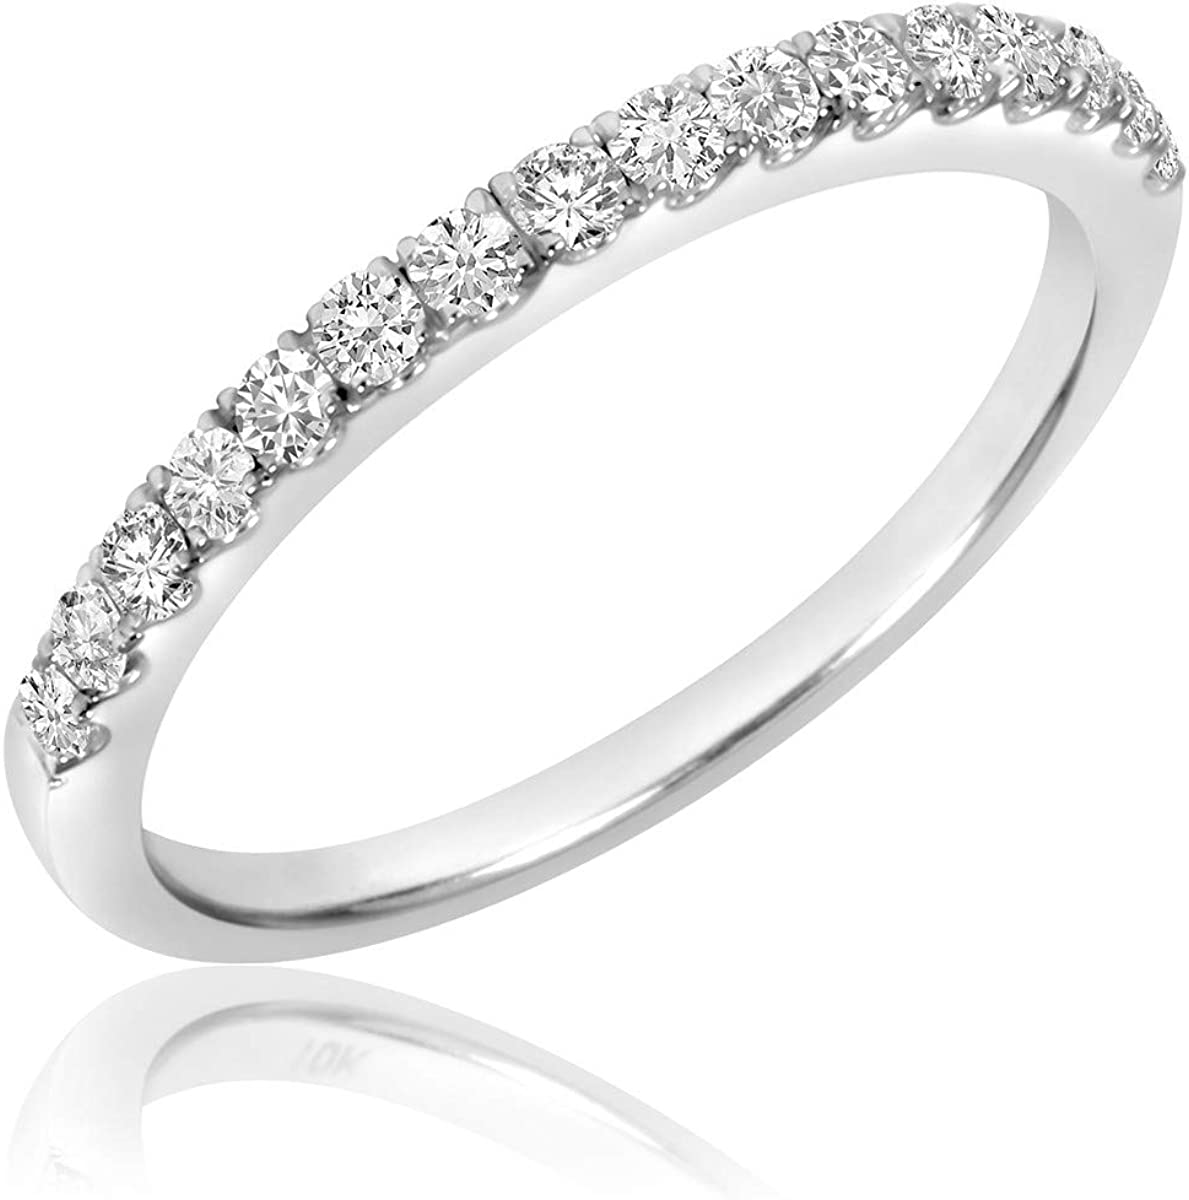 1.00 Carat (ctw) Diamond Engagement & Wedding Rings Set for Women Availalable in 10K Yellow & White Gold (Color: H, Clarity: I1-I2)